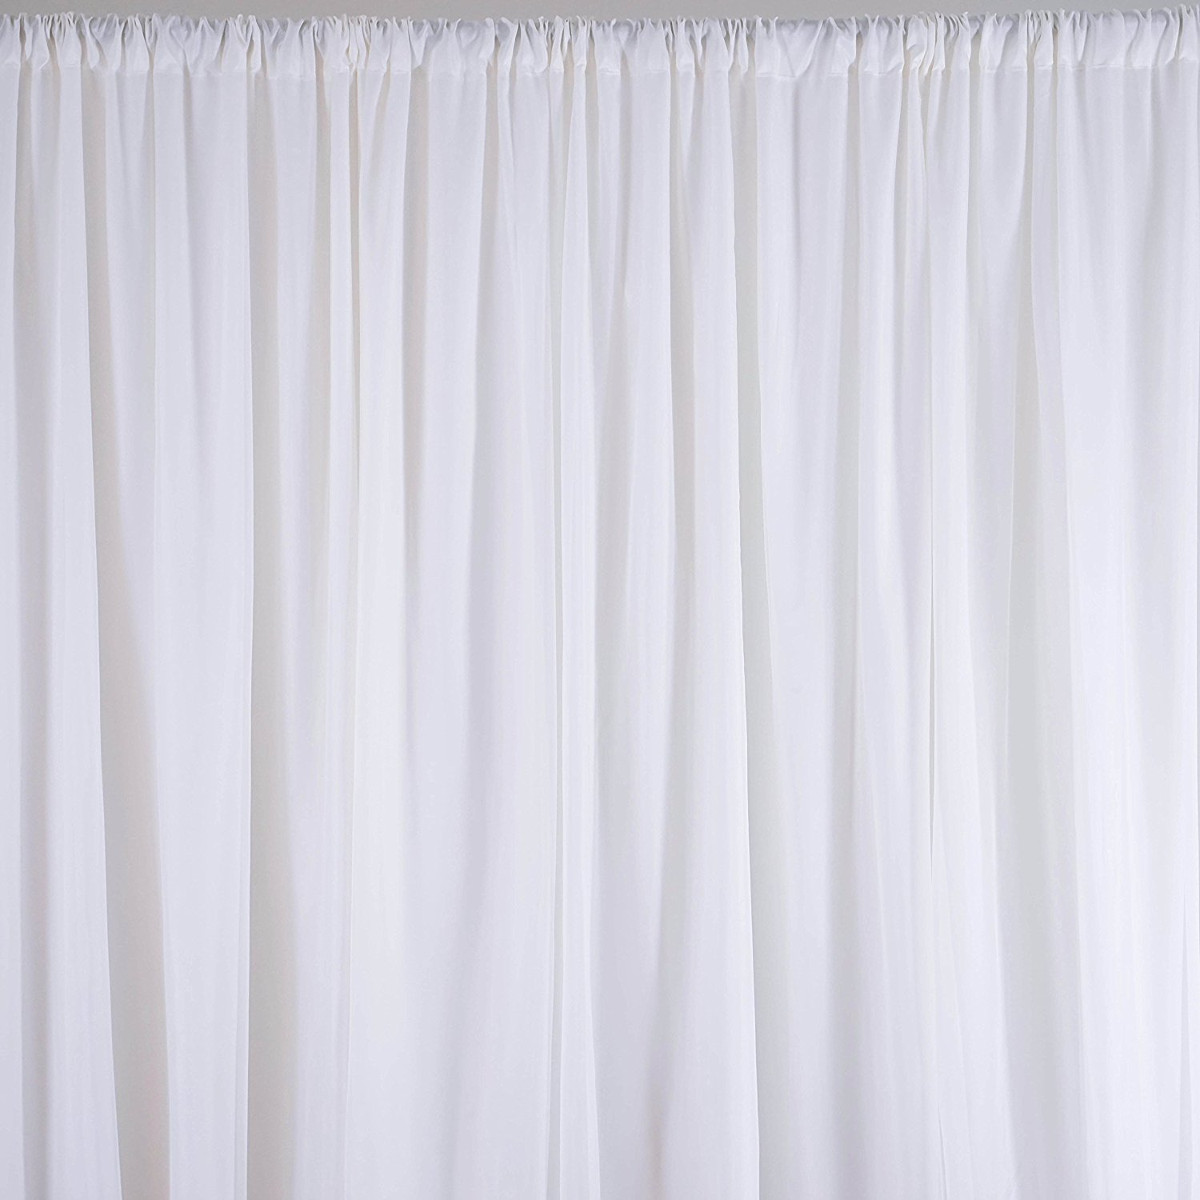 on 2 4m white fabric backdrop drapes curtains wedding ceremony event party photo booth home windows decor